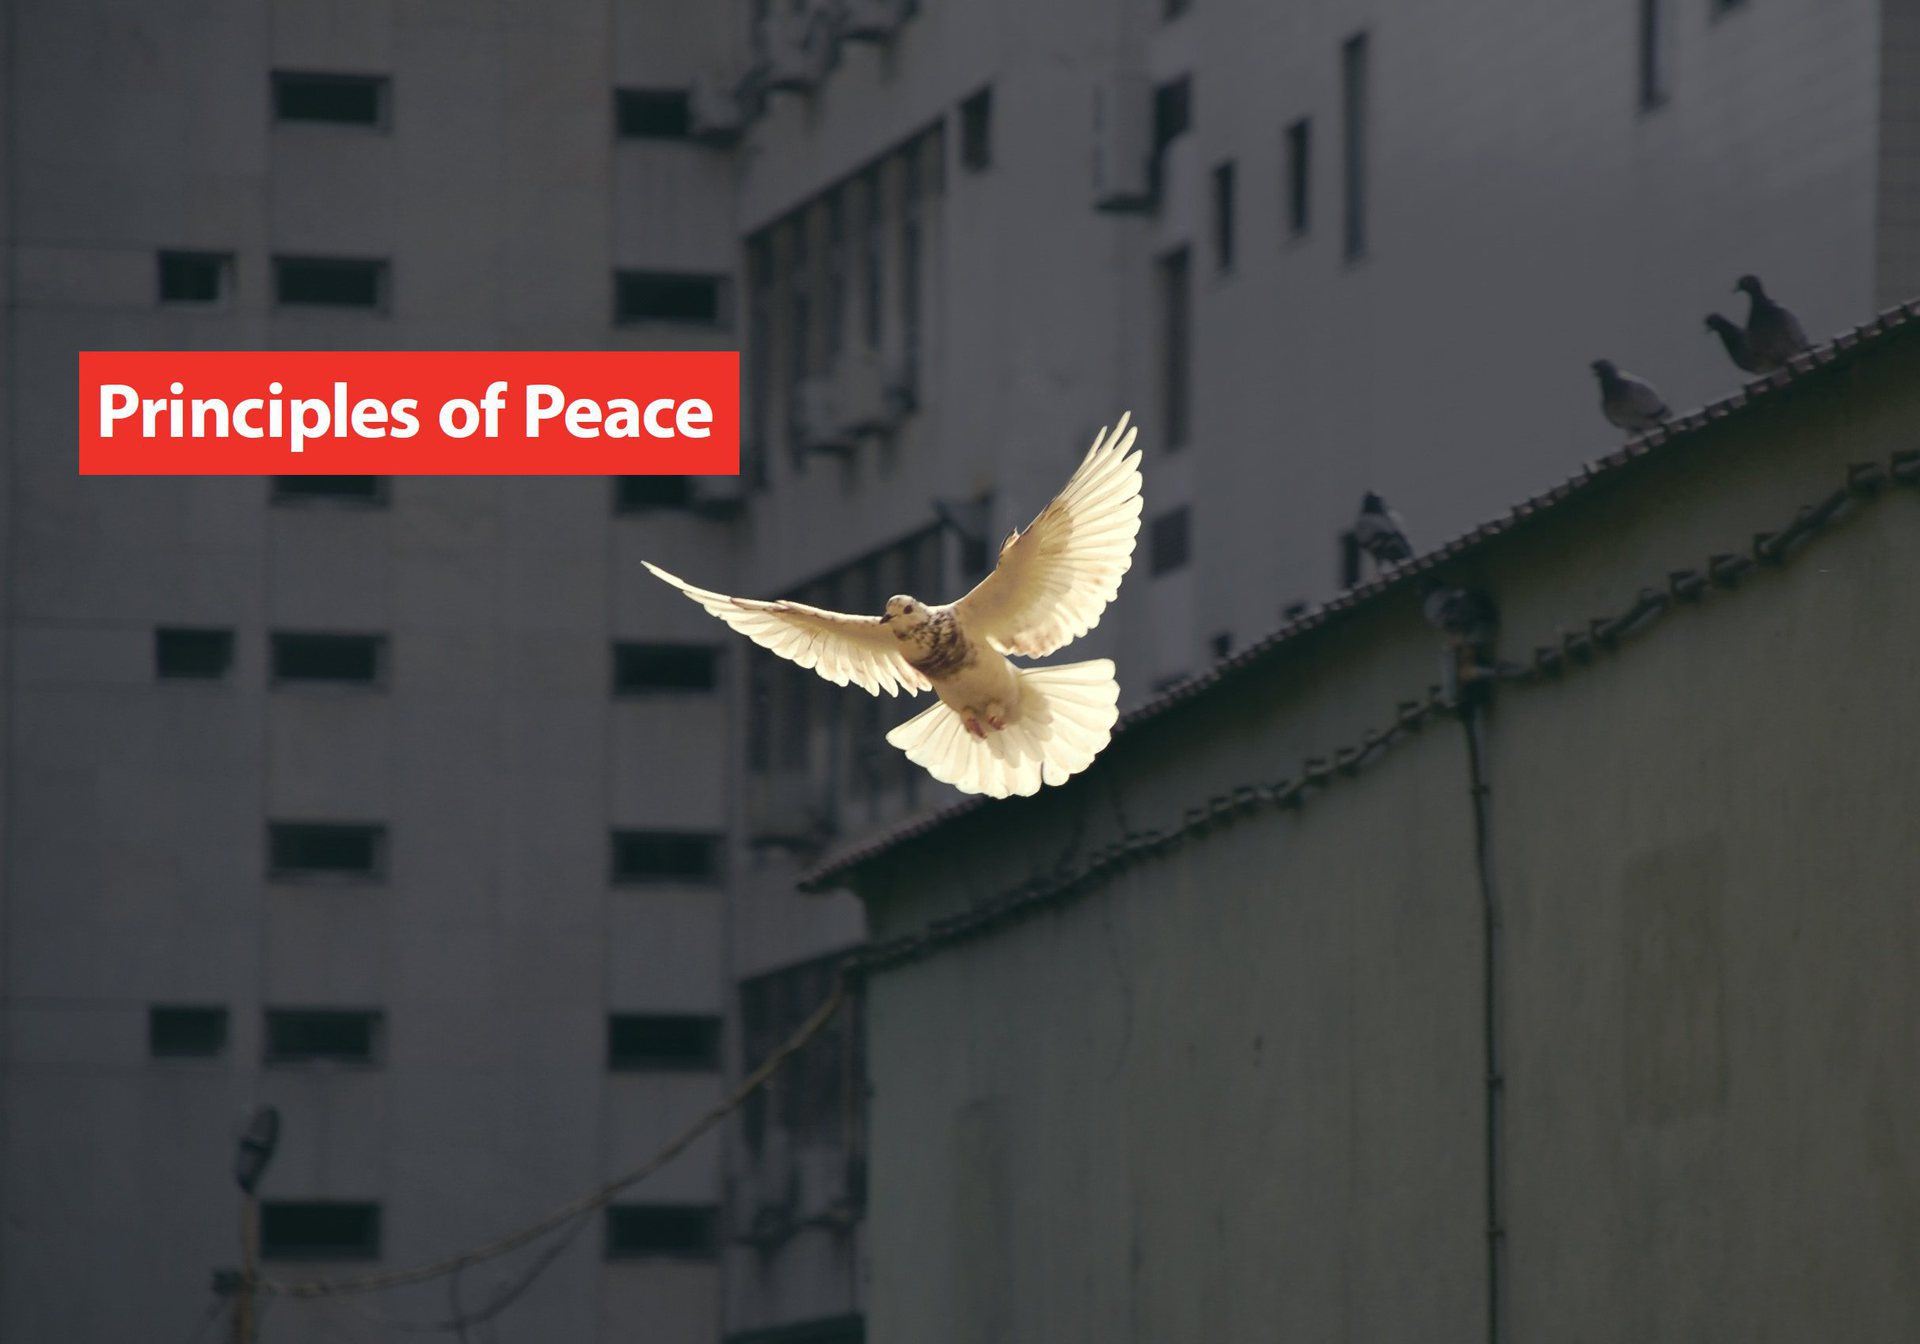 principles-of-peace-image